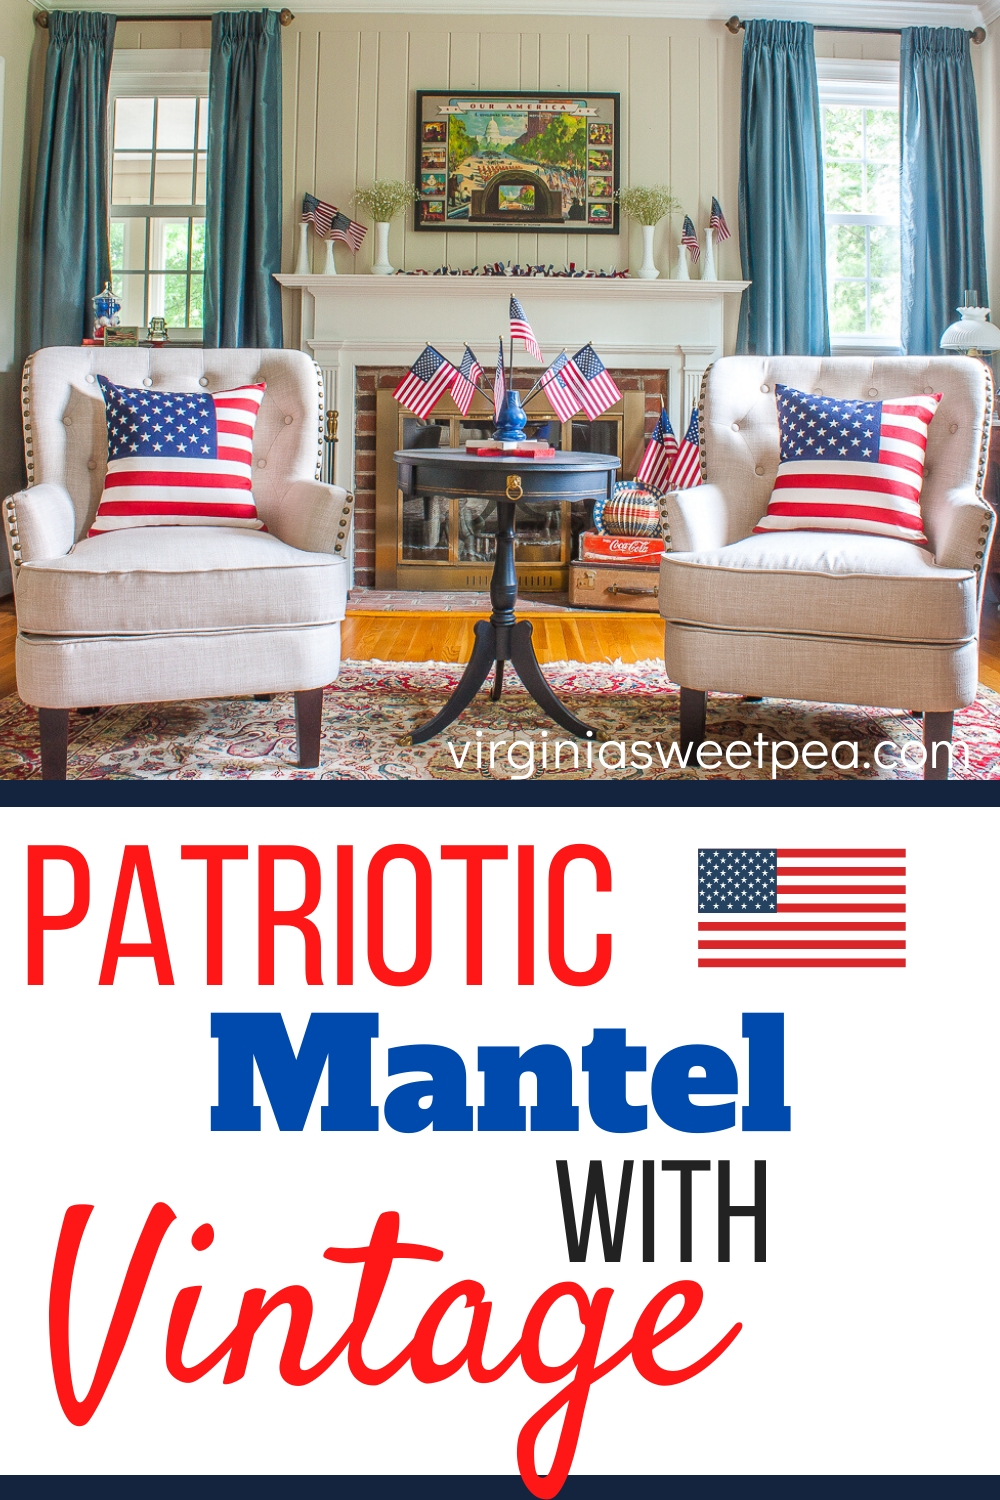 Patriotic Mantel with Vintage - A mantel is decorated for July 4 with the American flag and vintage. #patrioticdecor #patrioticmantel #4thofjulydecor #4thofjulymantel #vintagedecor via @spaula